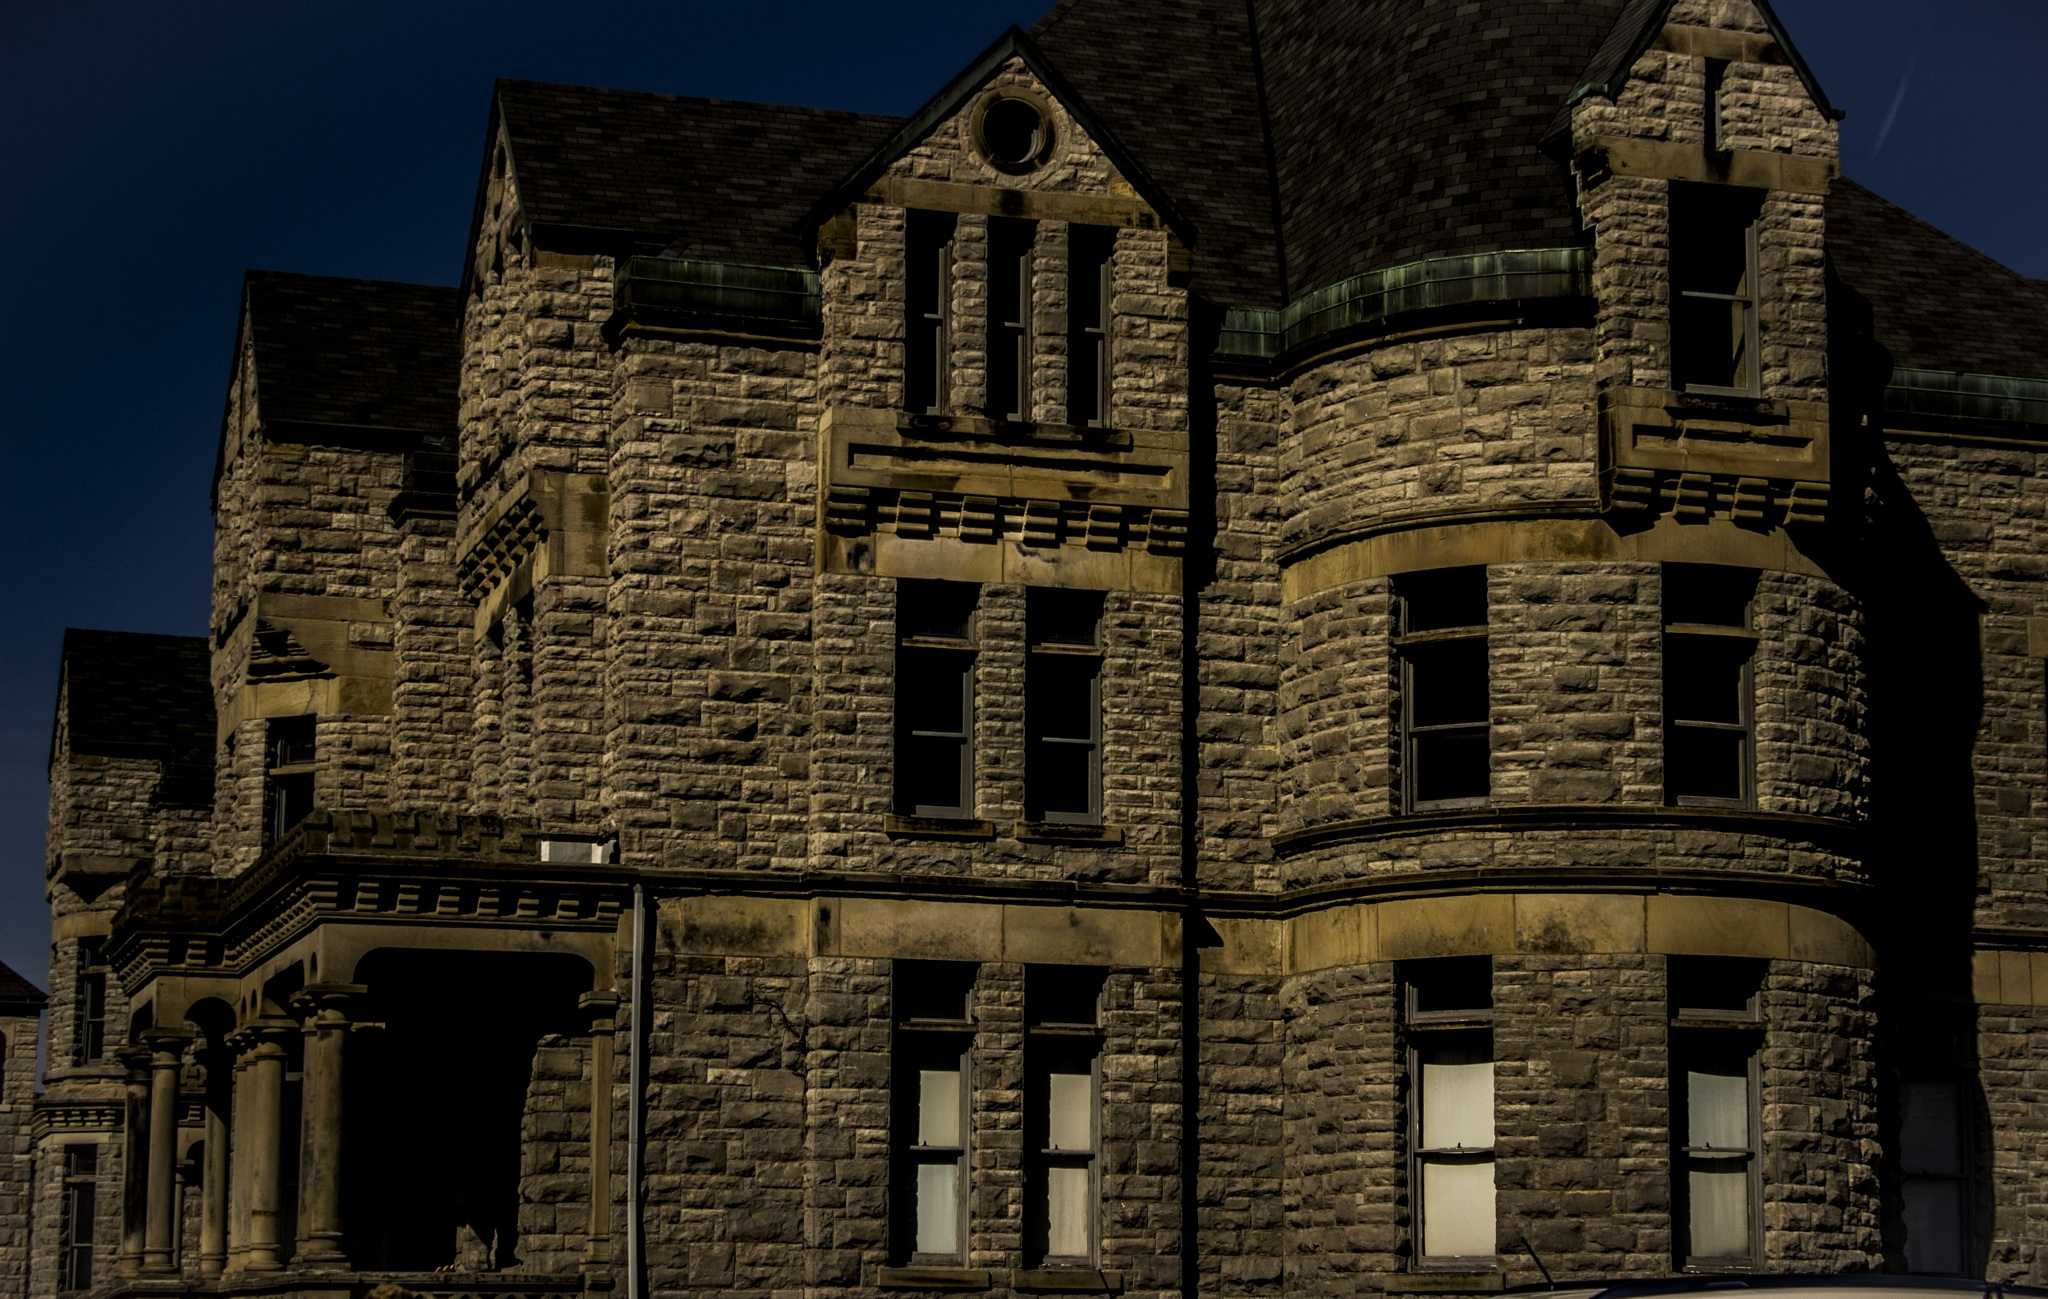 ohio state reformatory by Tiffany Marrie